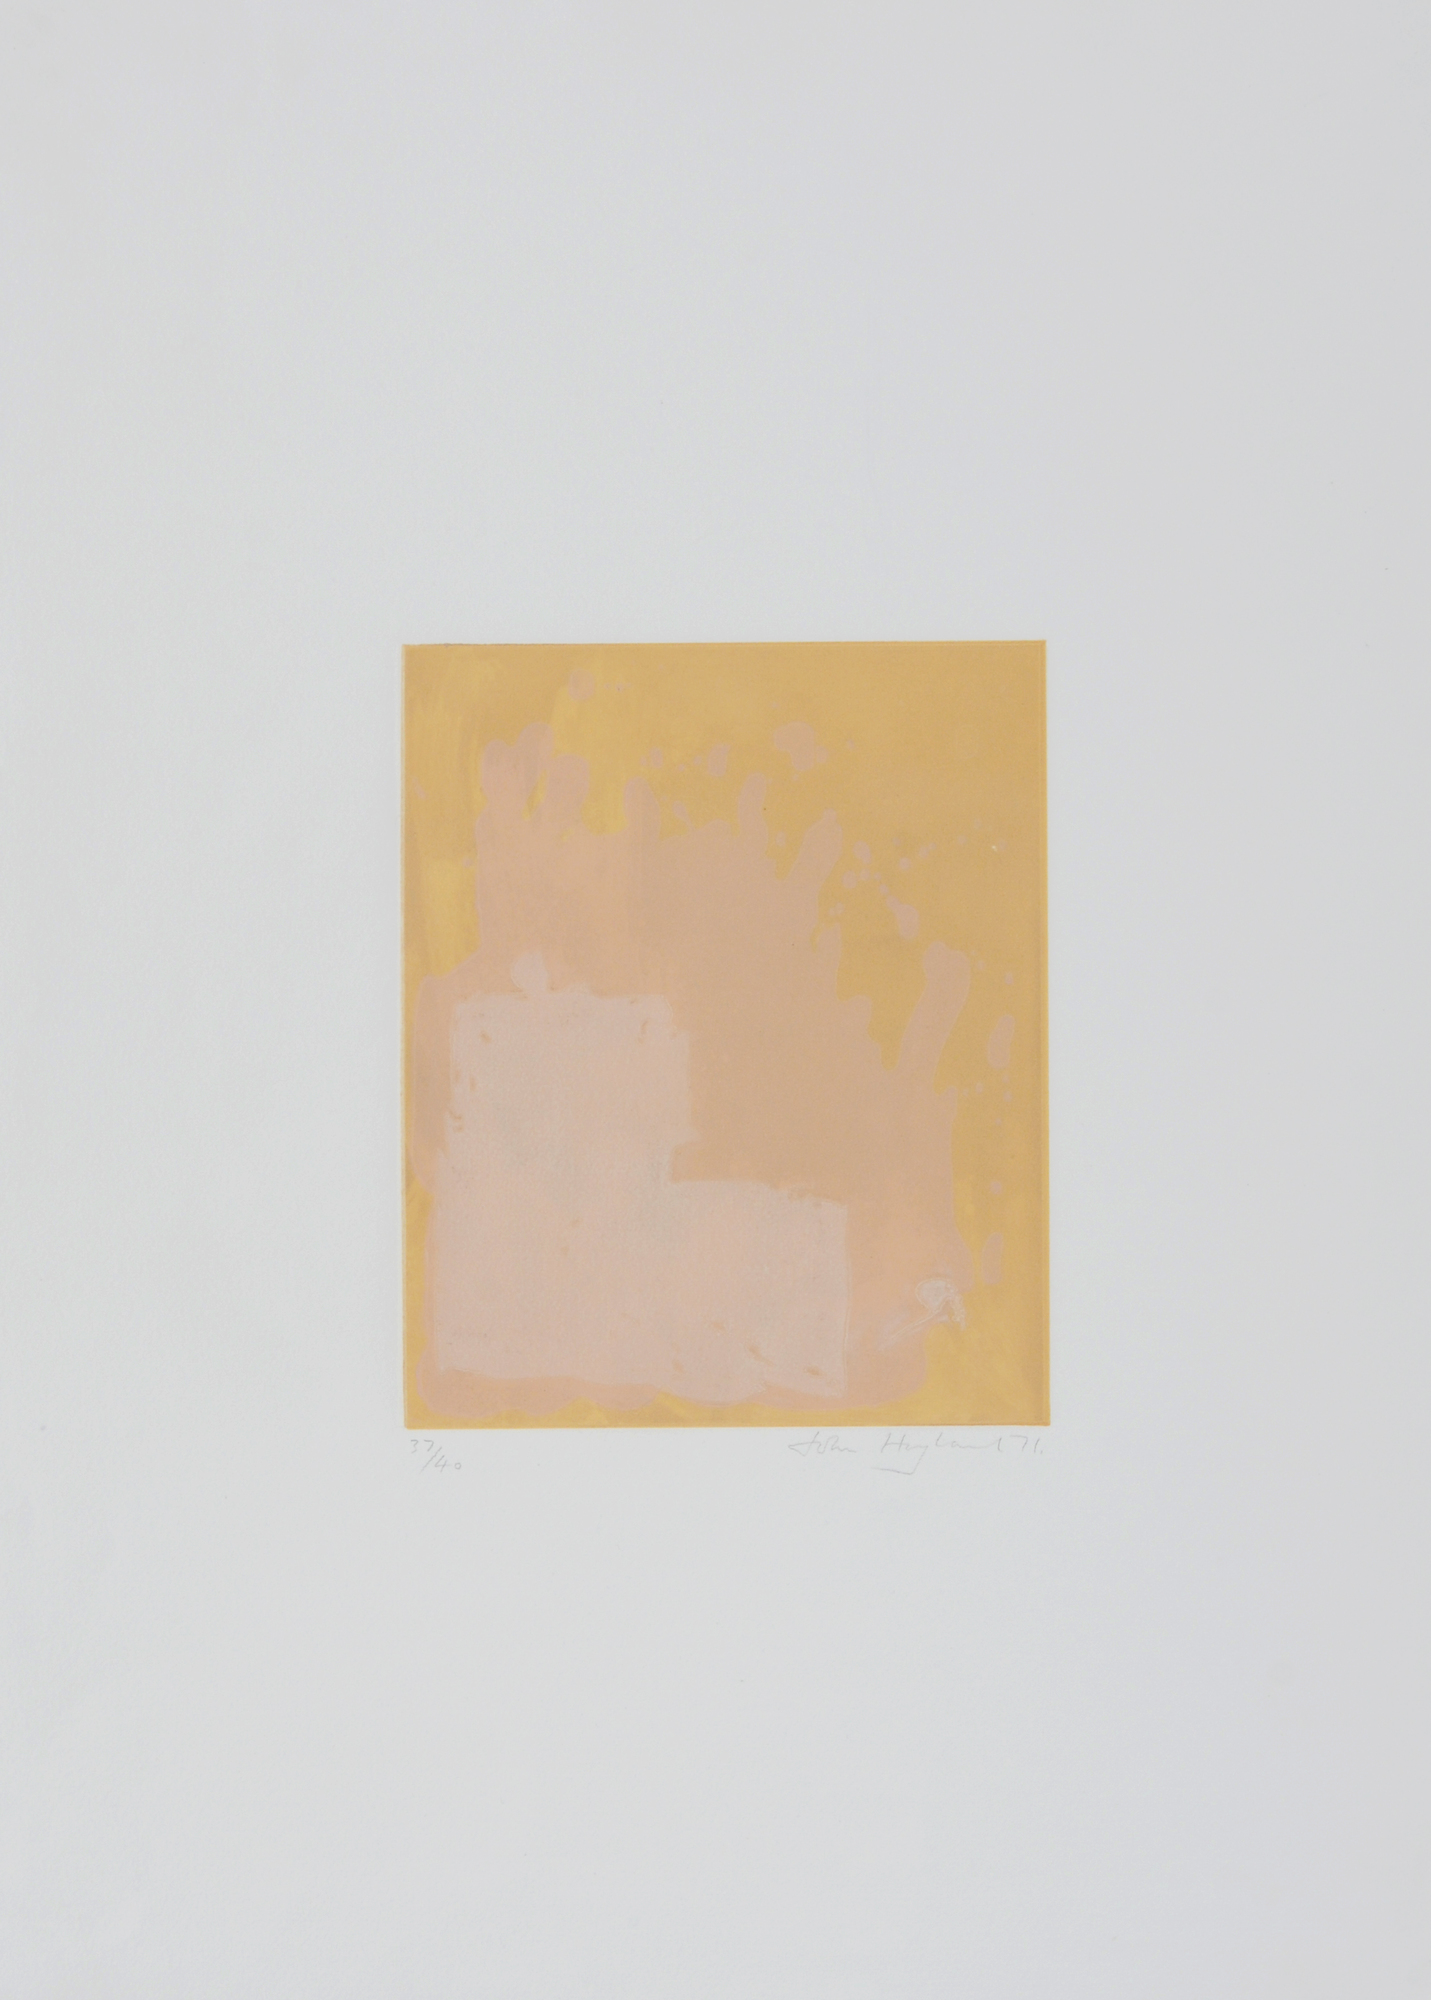 Hoyland John, 2 sheets: Untitled